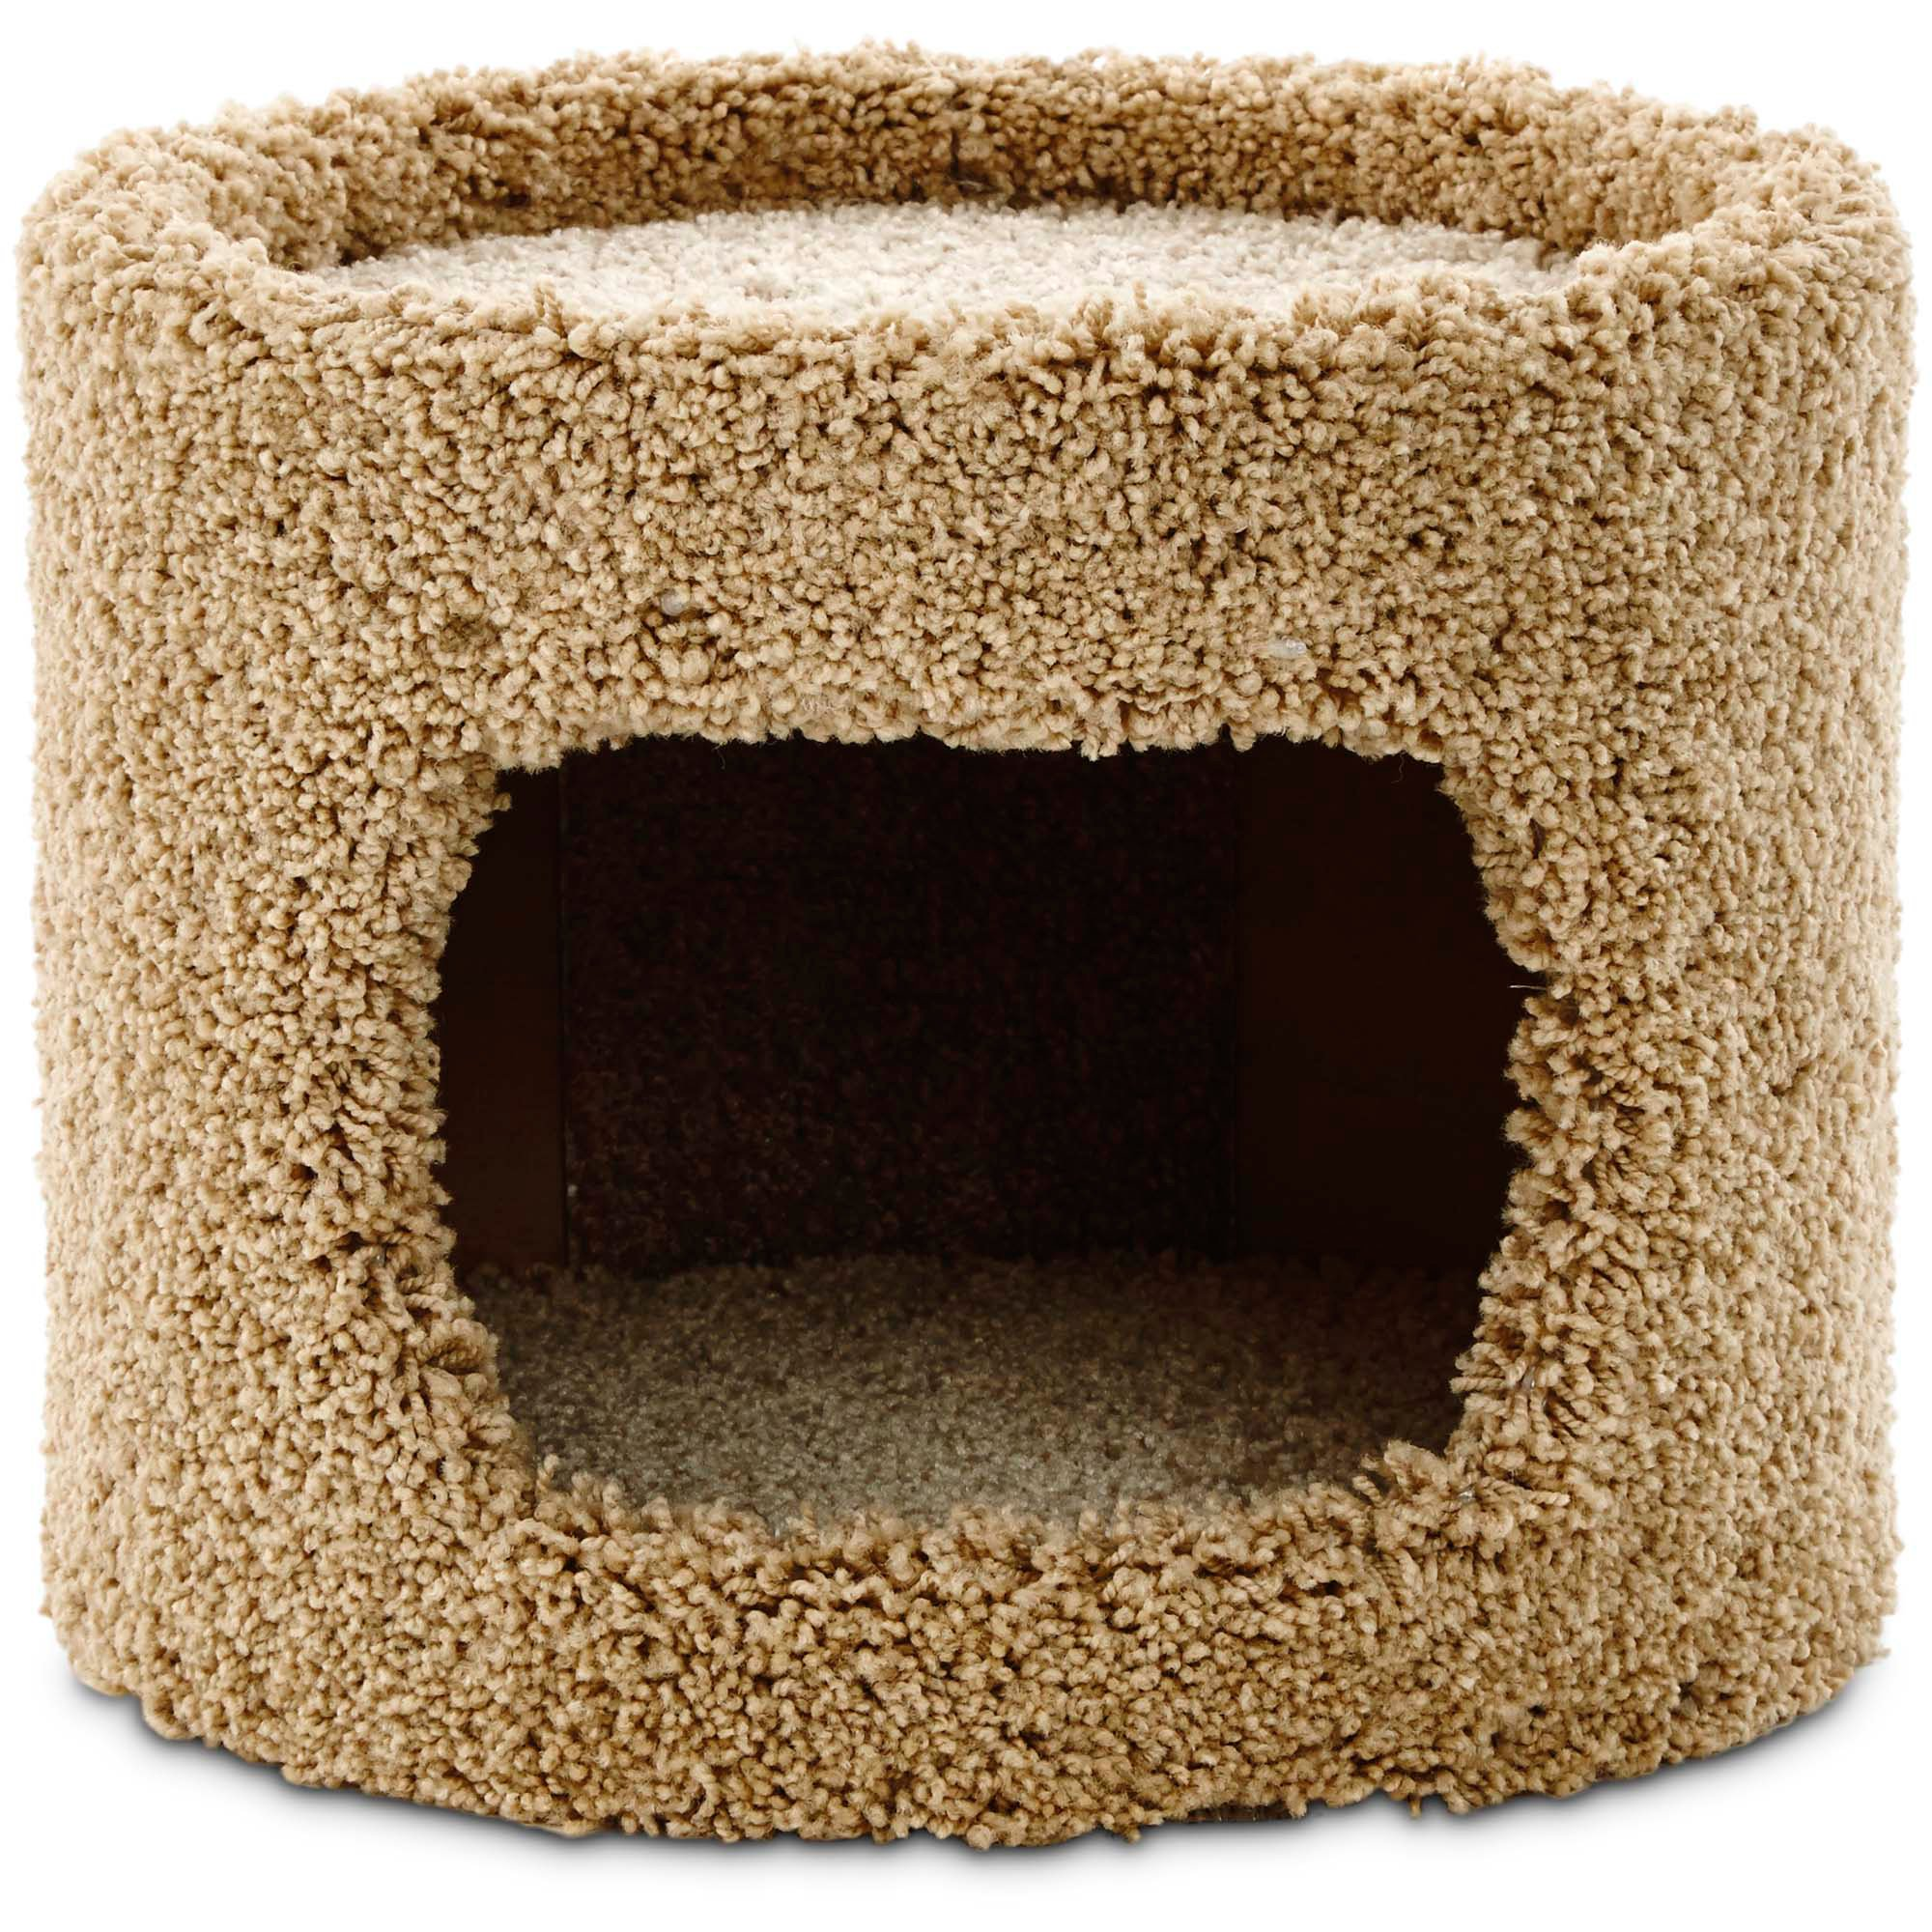 You & Me Round Cat Condo | Petco